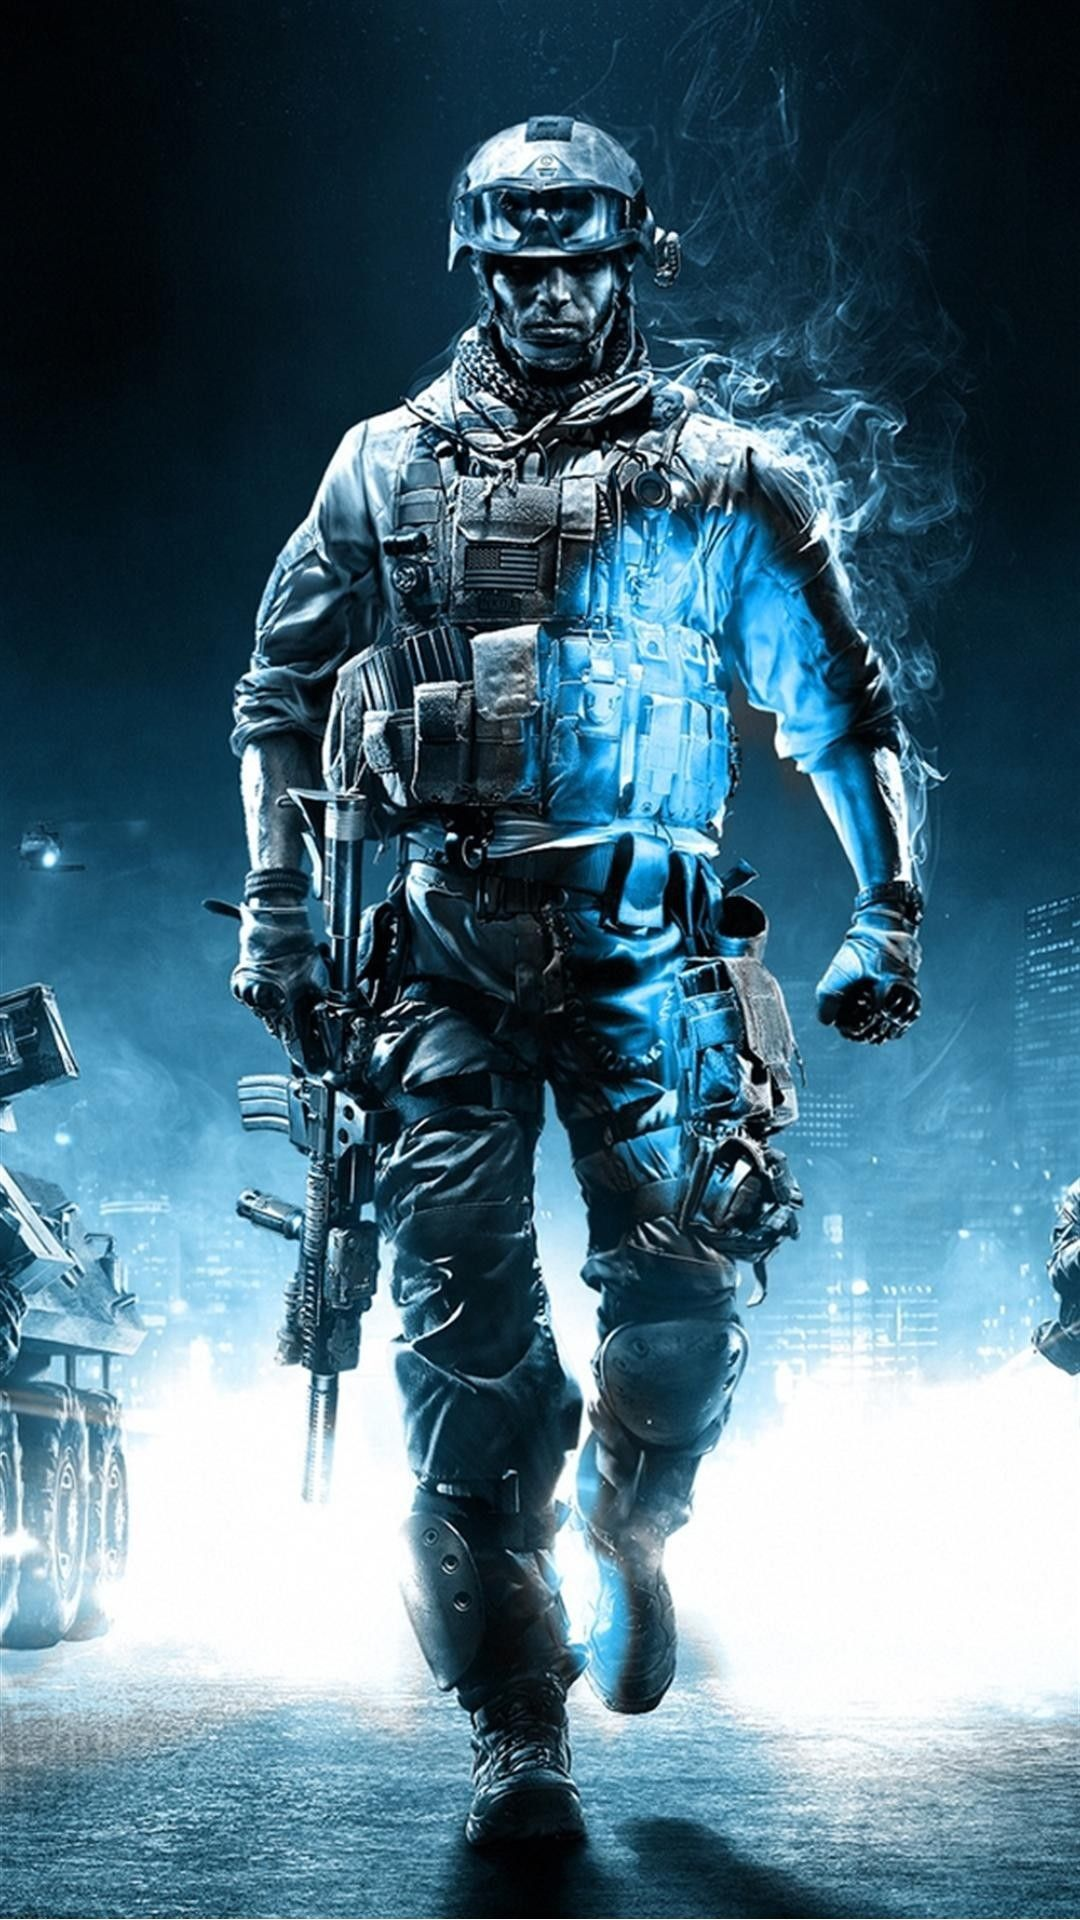 Spectre Call Of Duty Black Ops 3 Android Background In 2020